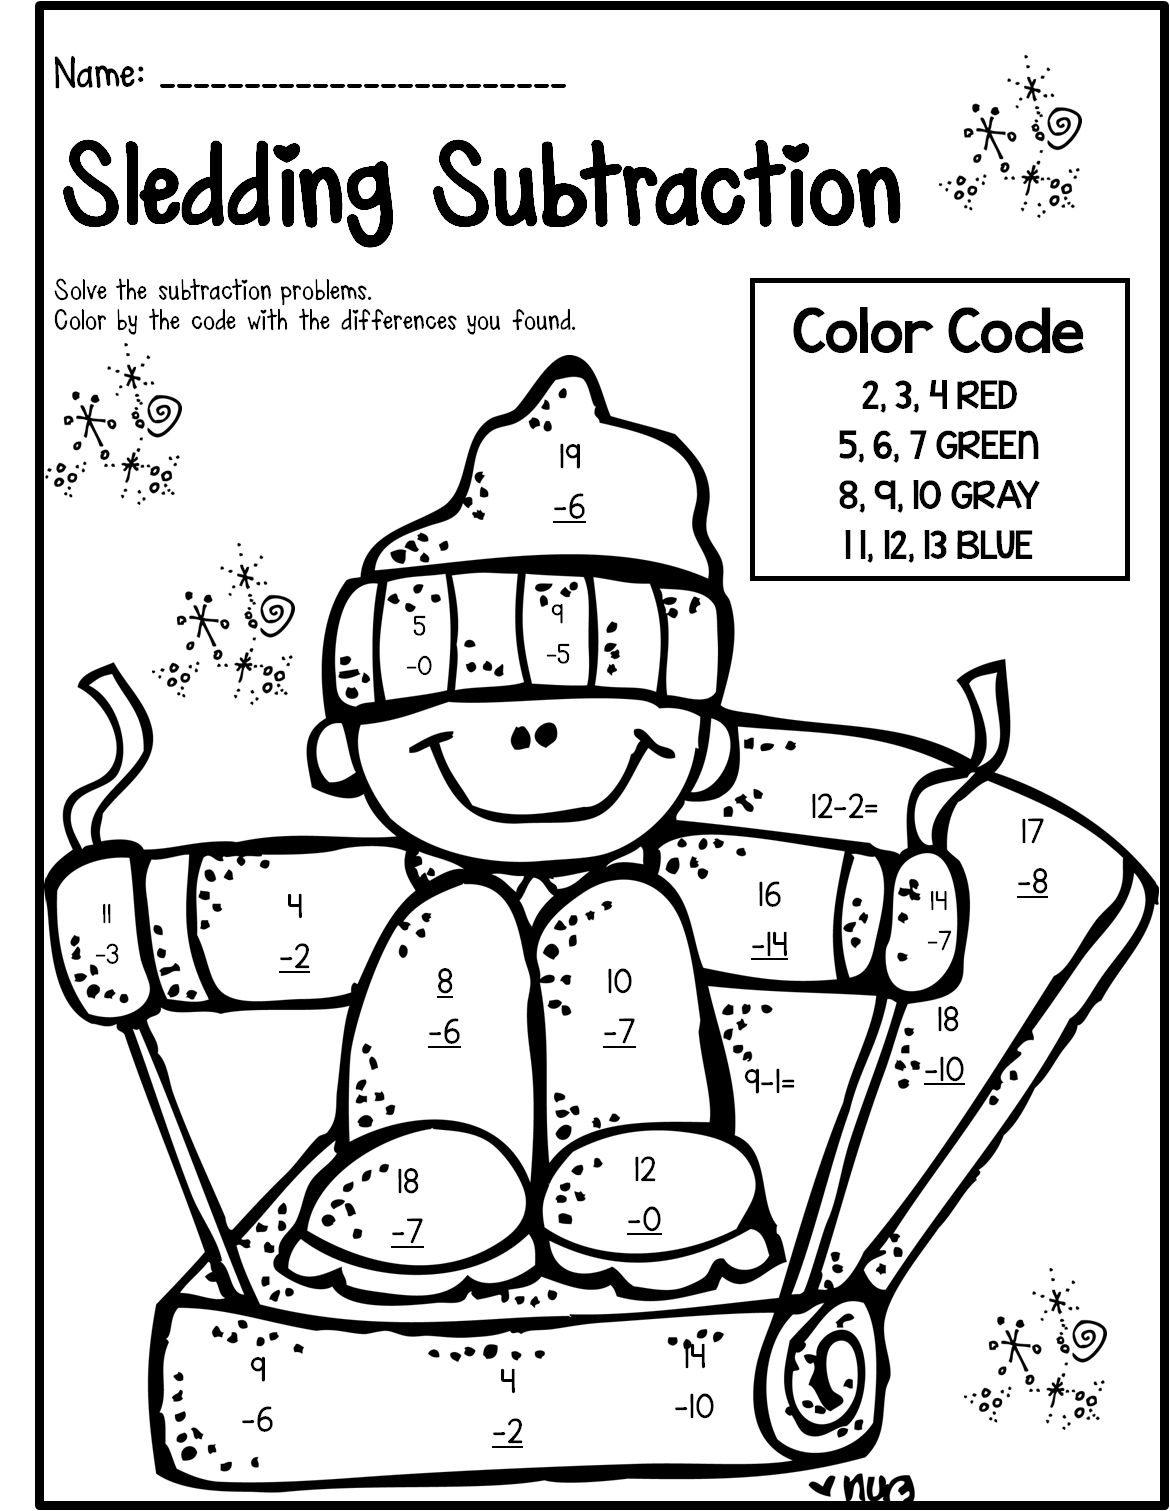 Christmas Coloring Pages 2nd Grade With Subtraction Worksheets Second 690880 Myscres